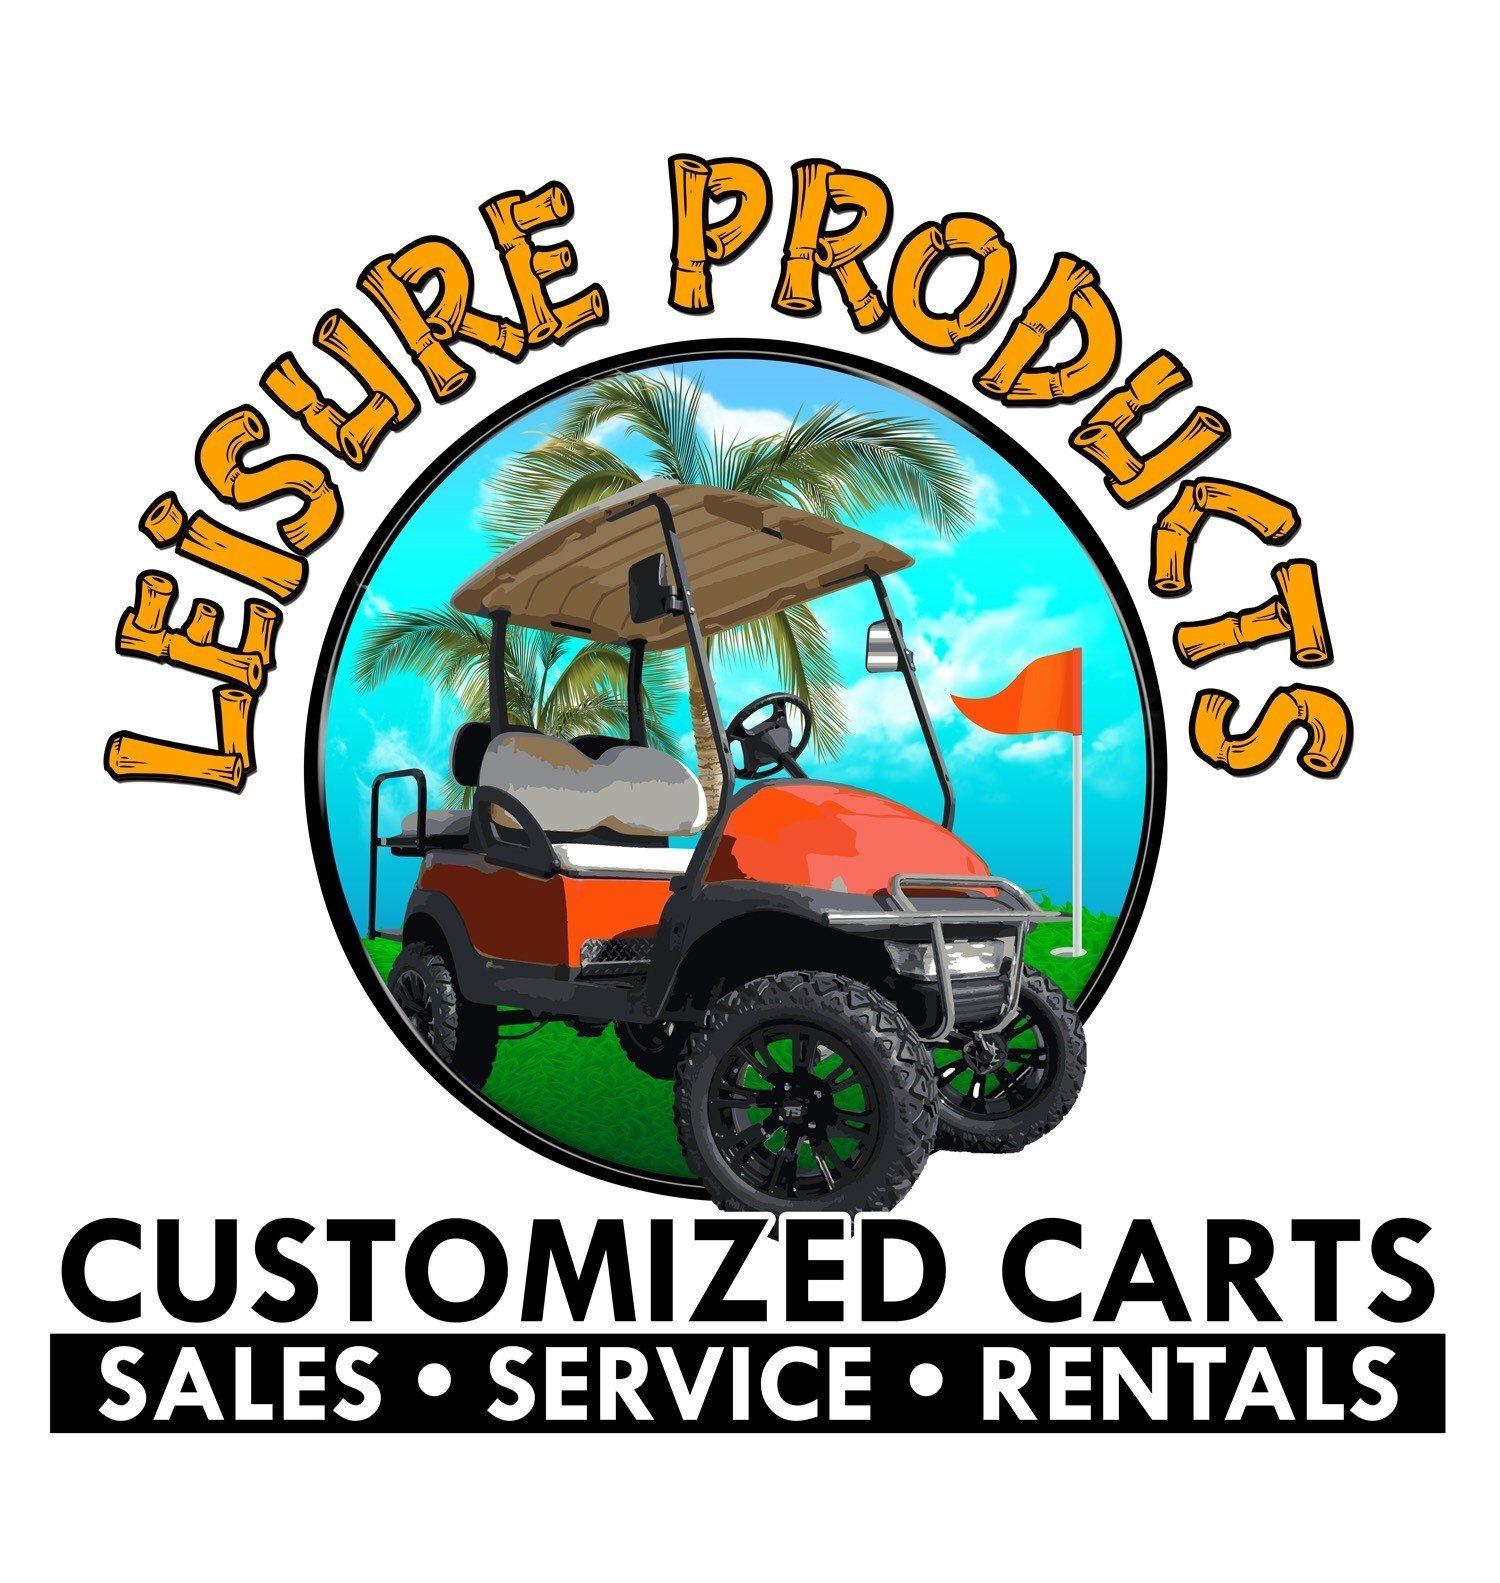 Leisure Products - logo